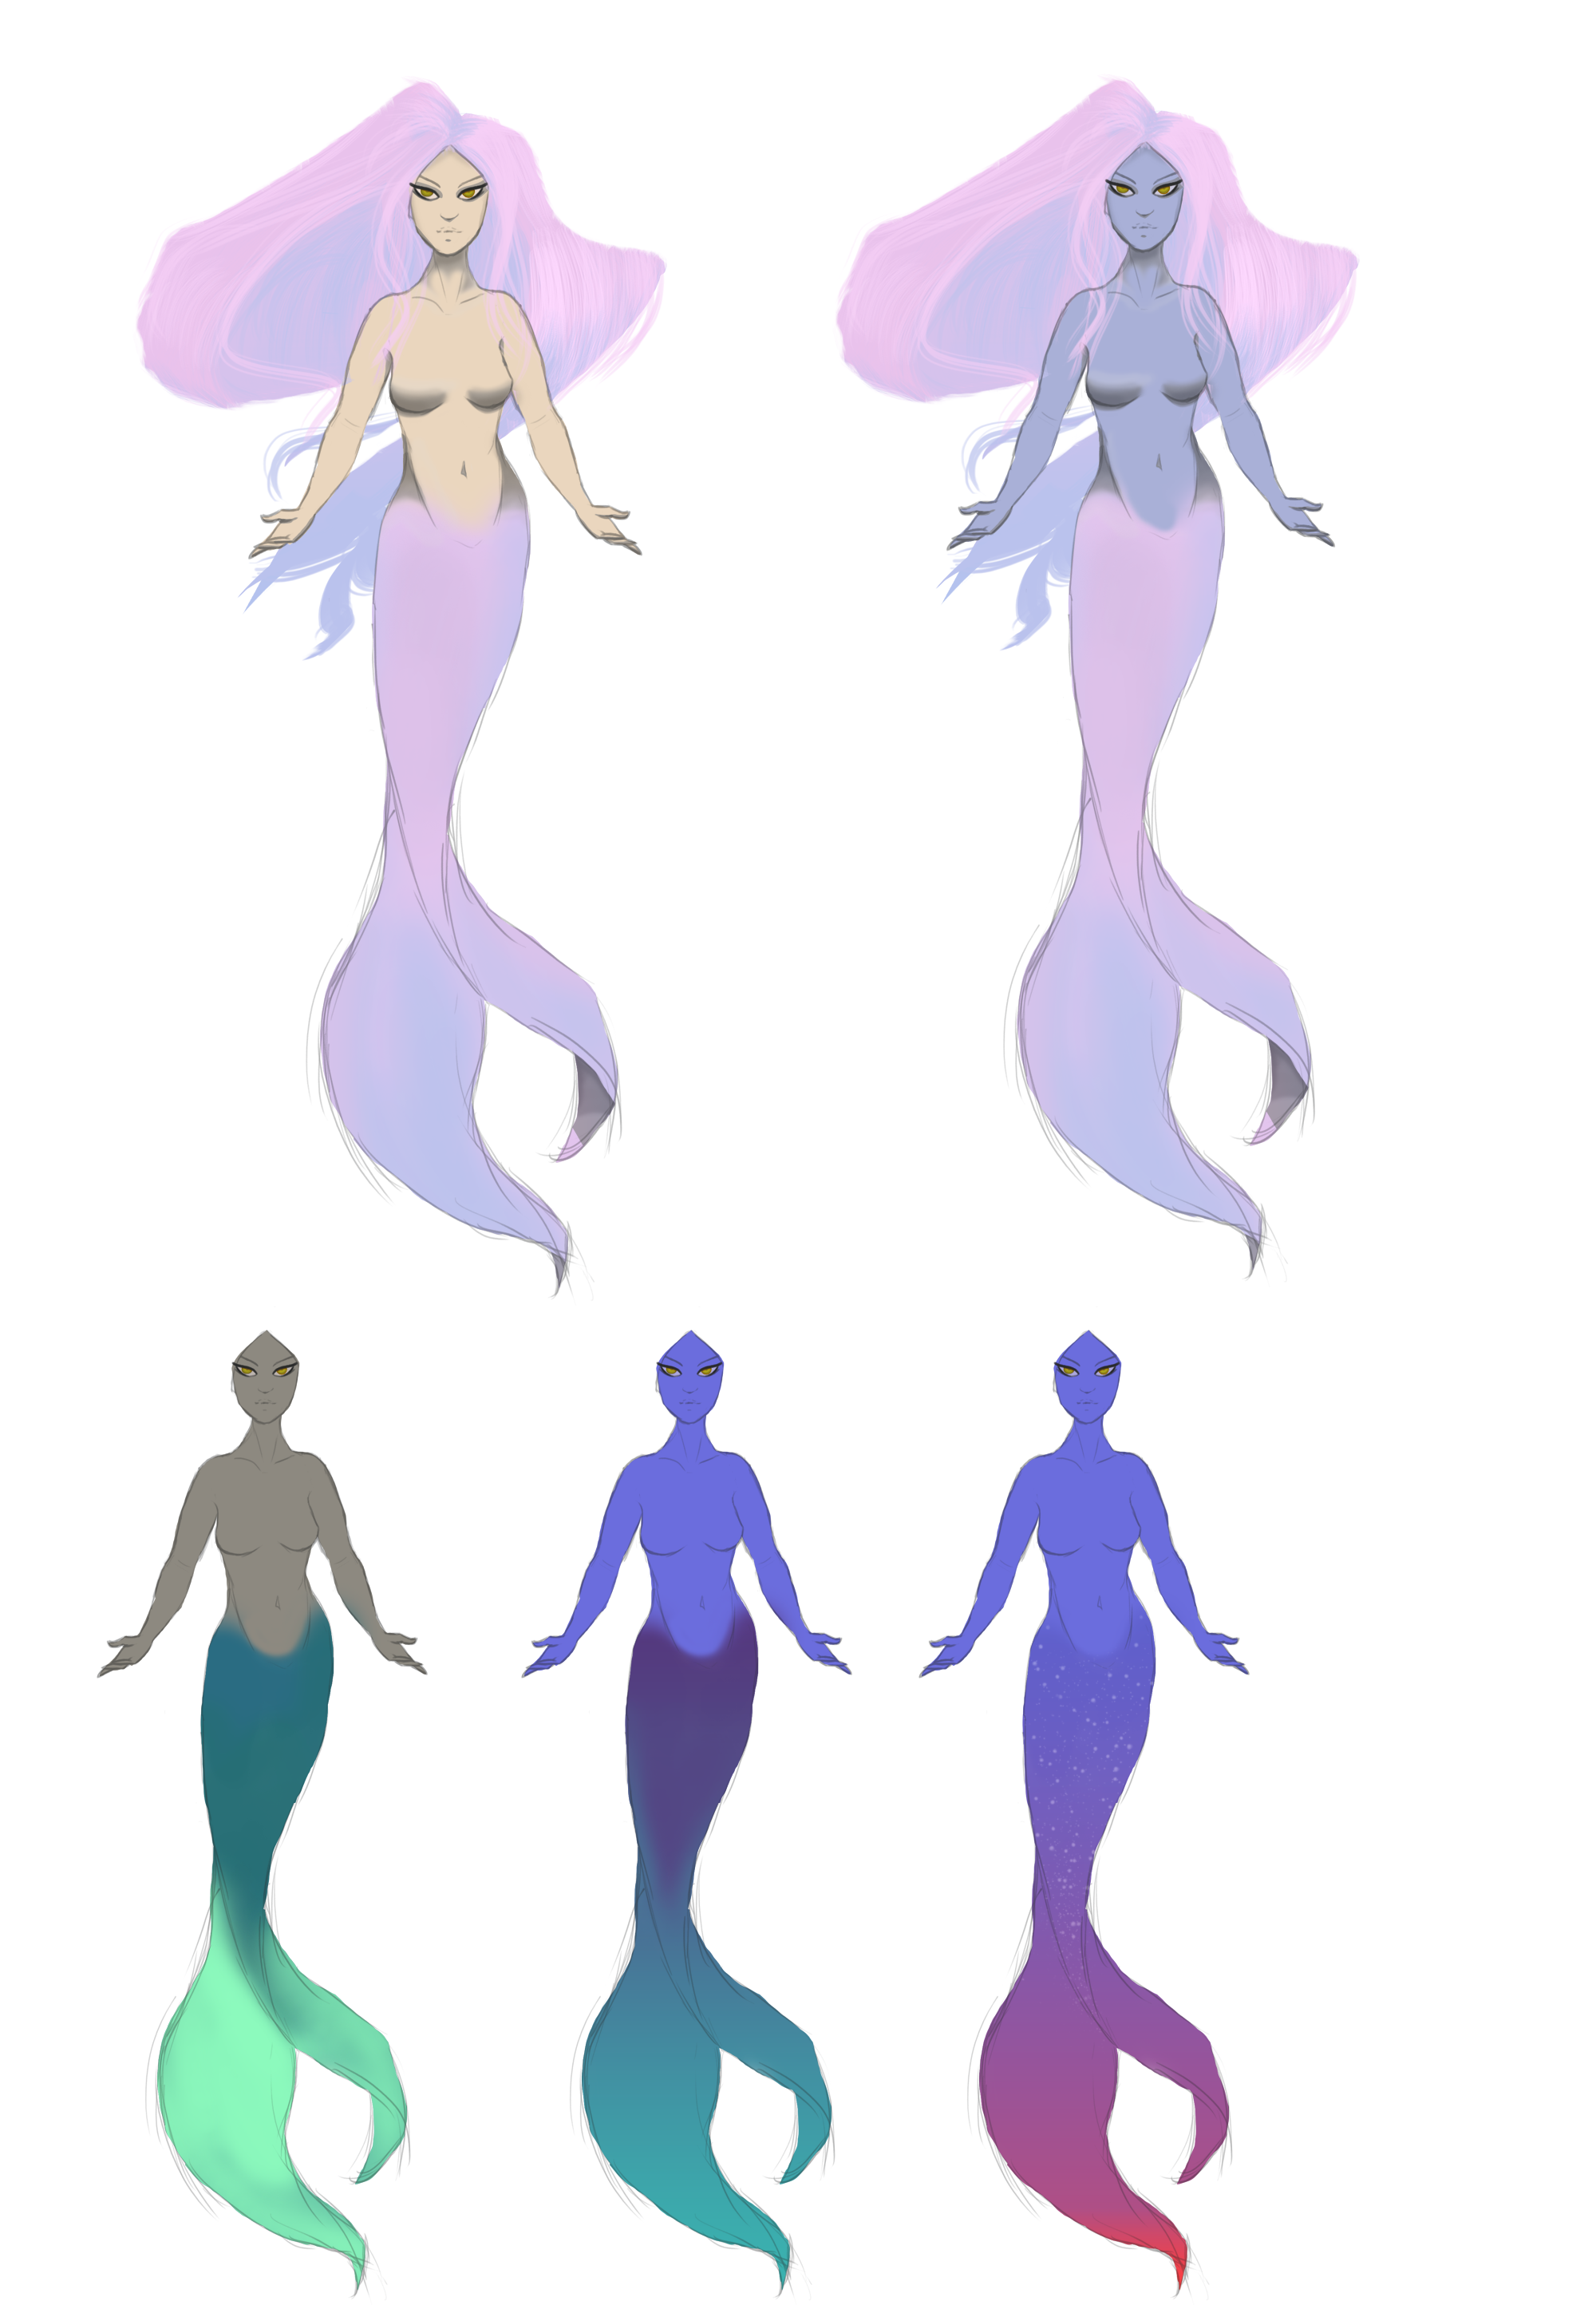 The first mermaid concepts